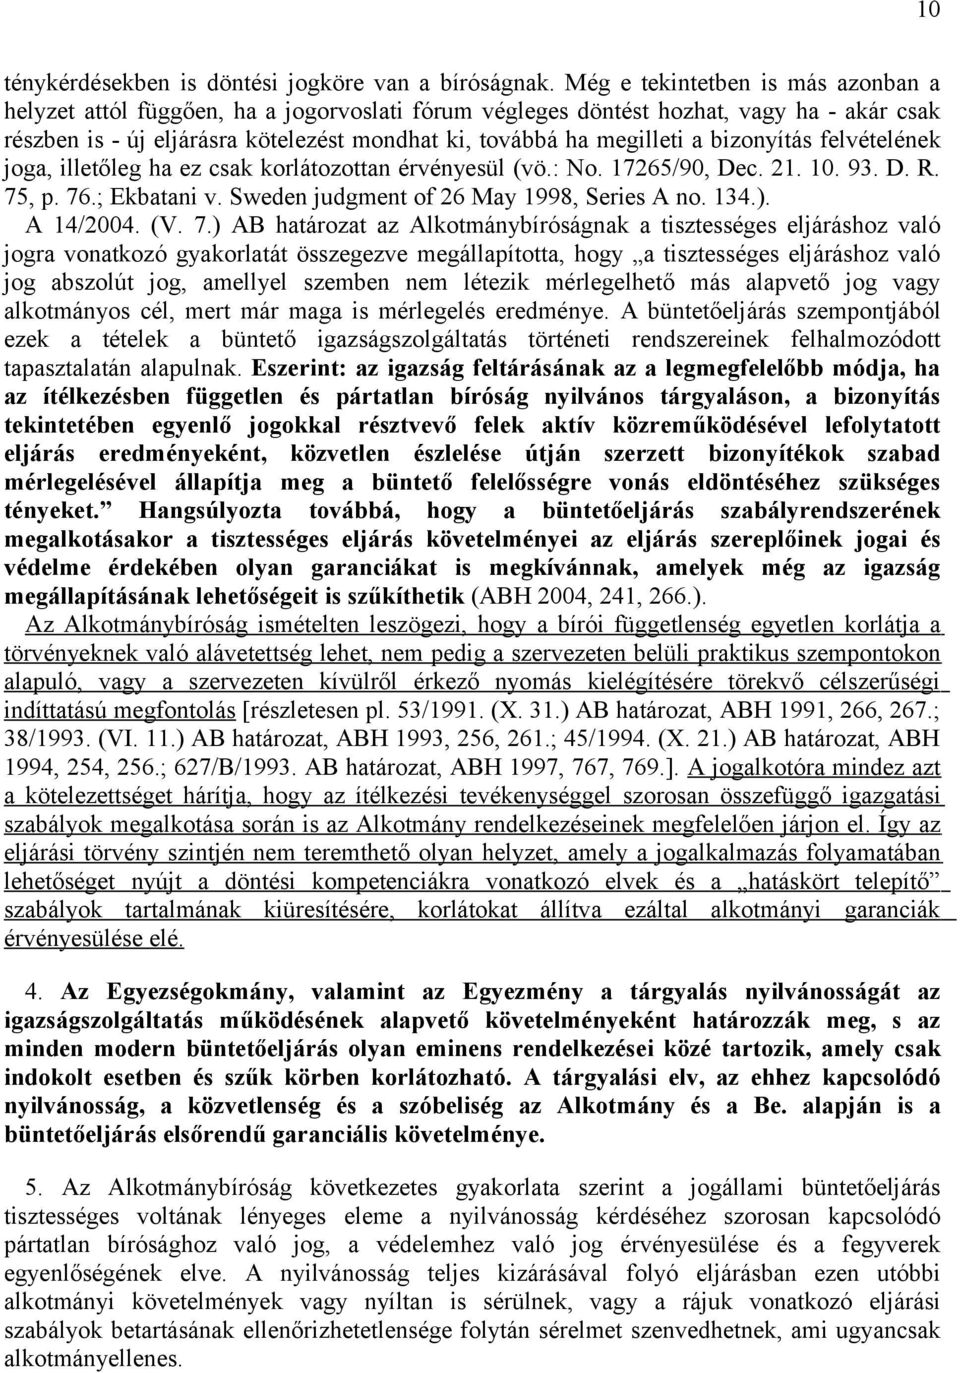 bizonyítás felvételének joga, illetőleg ha ez csak korlátozottan érvényesül (vö.: No. 17265/90, Dec. 21. 10. 93. D. R. 75, p. 76.; Ekbatani v. Sweden judgment of 26 May 1998, Series A no. 134.).